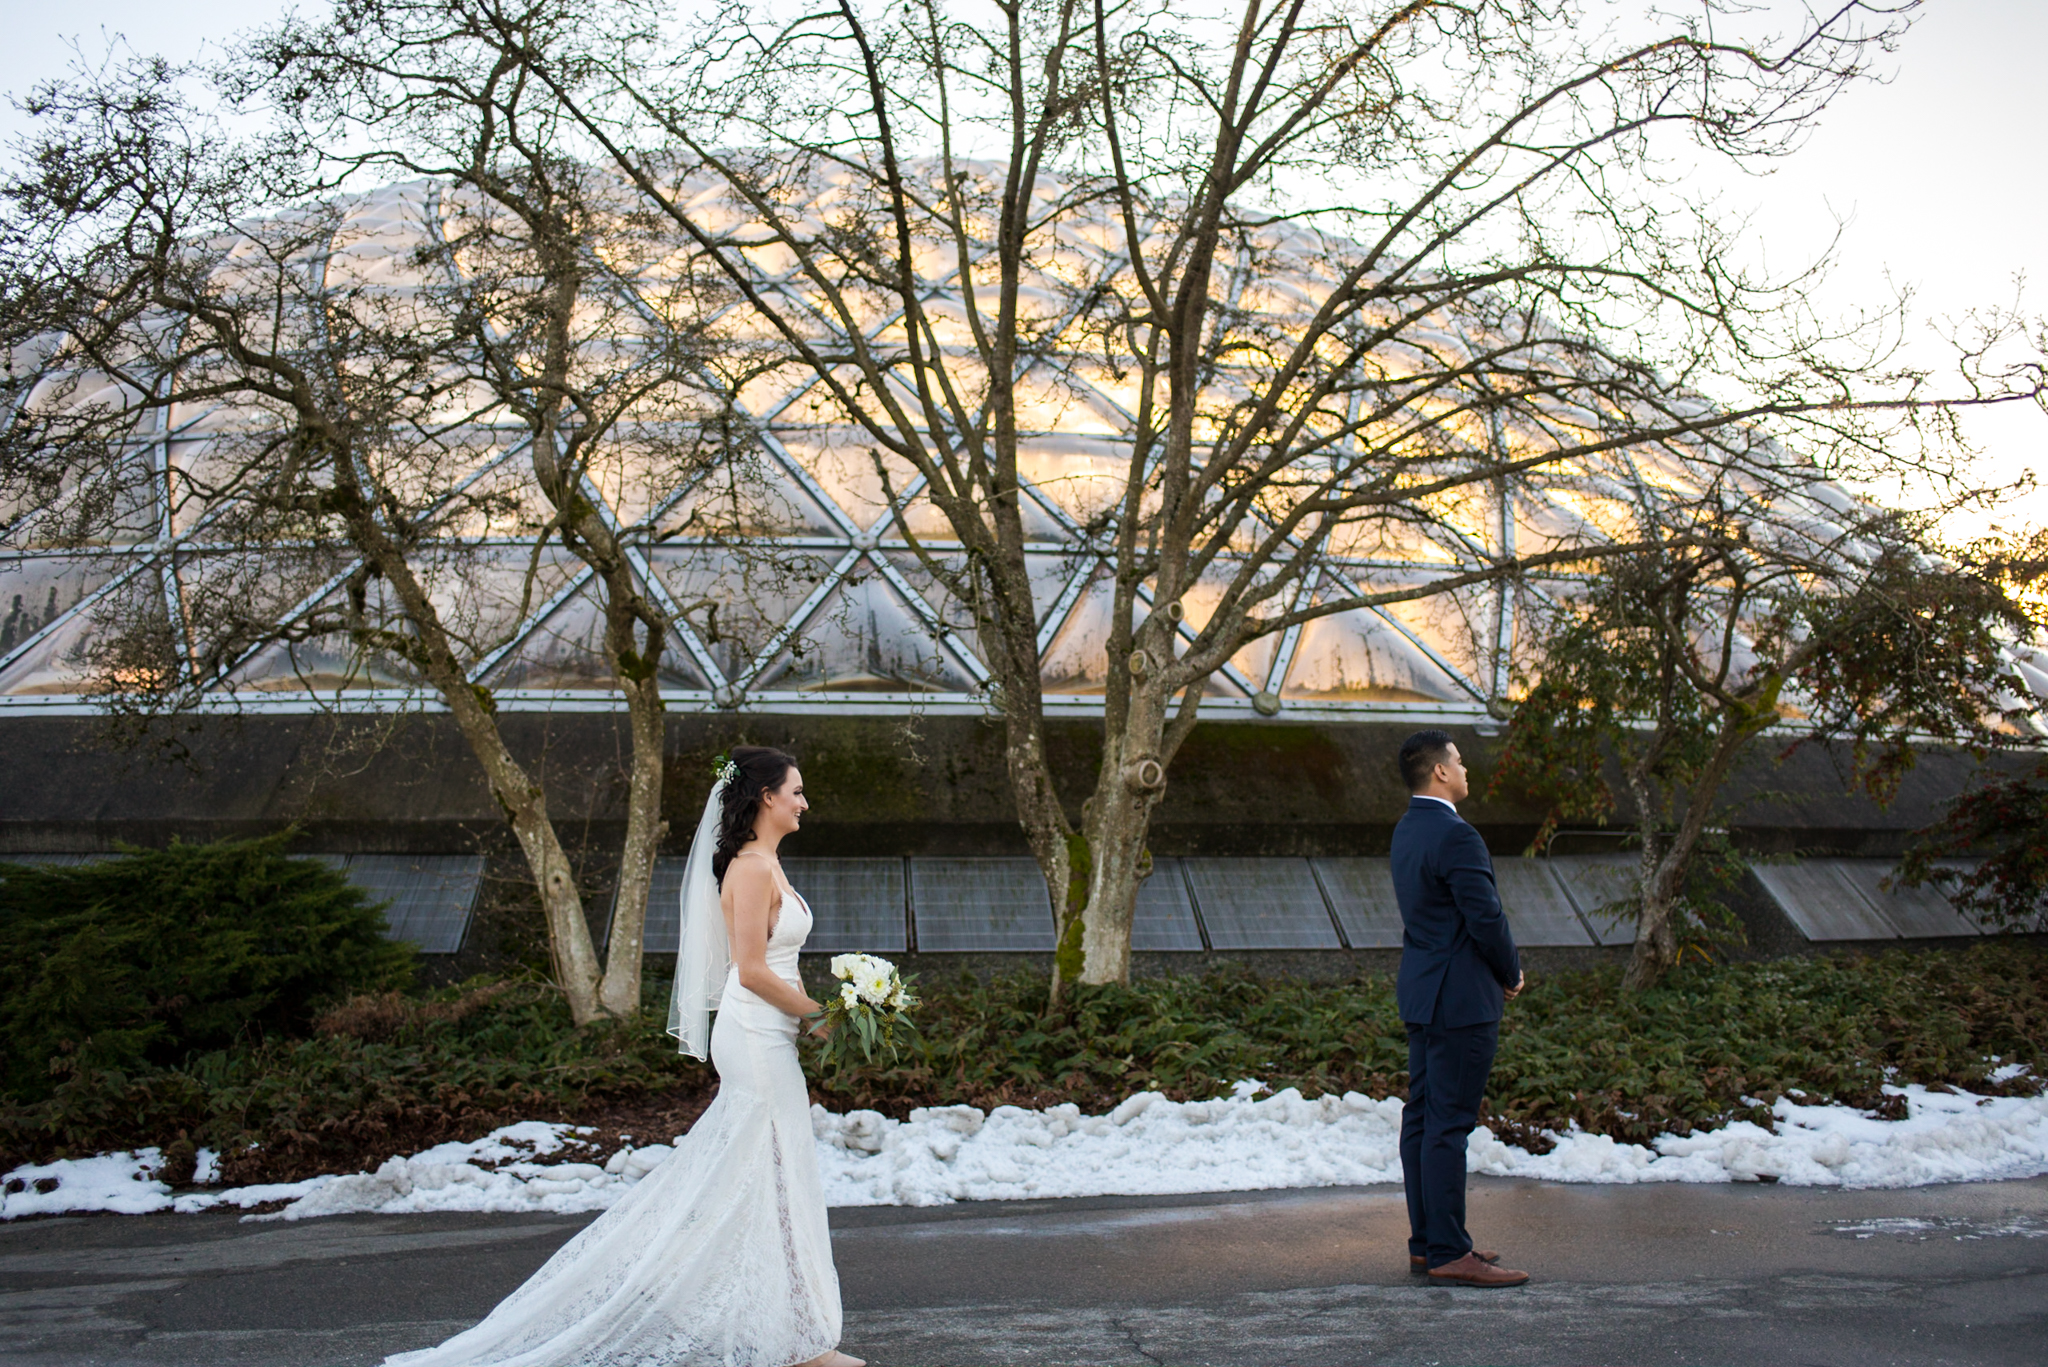 Queen Elizabeth Park Wedding Photographer-5.jpg